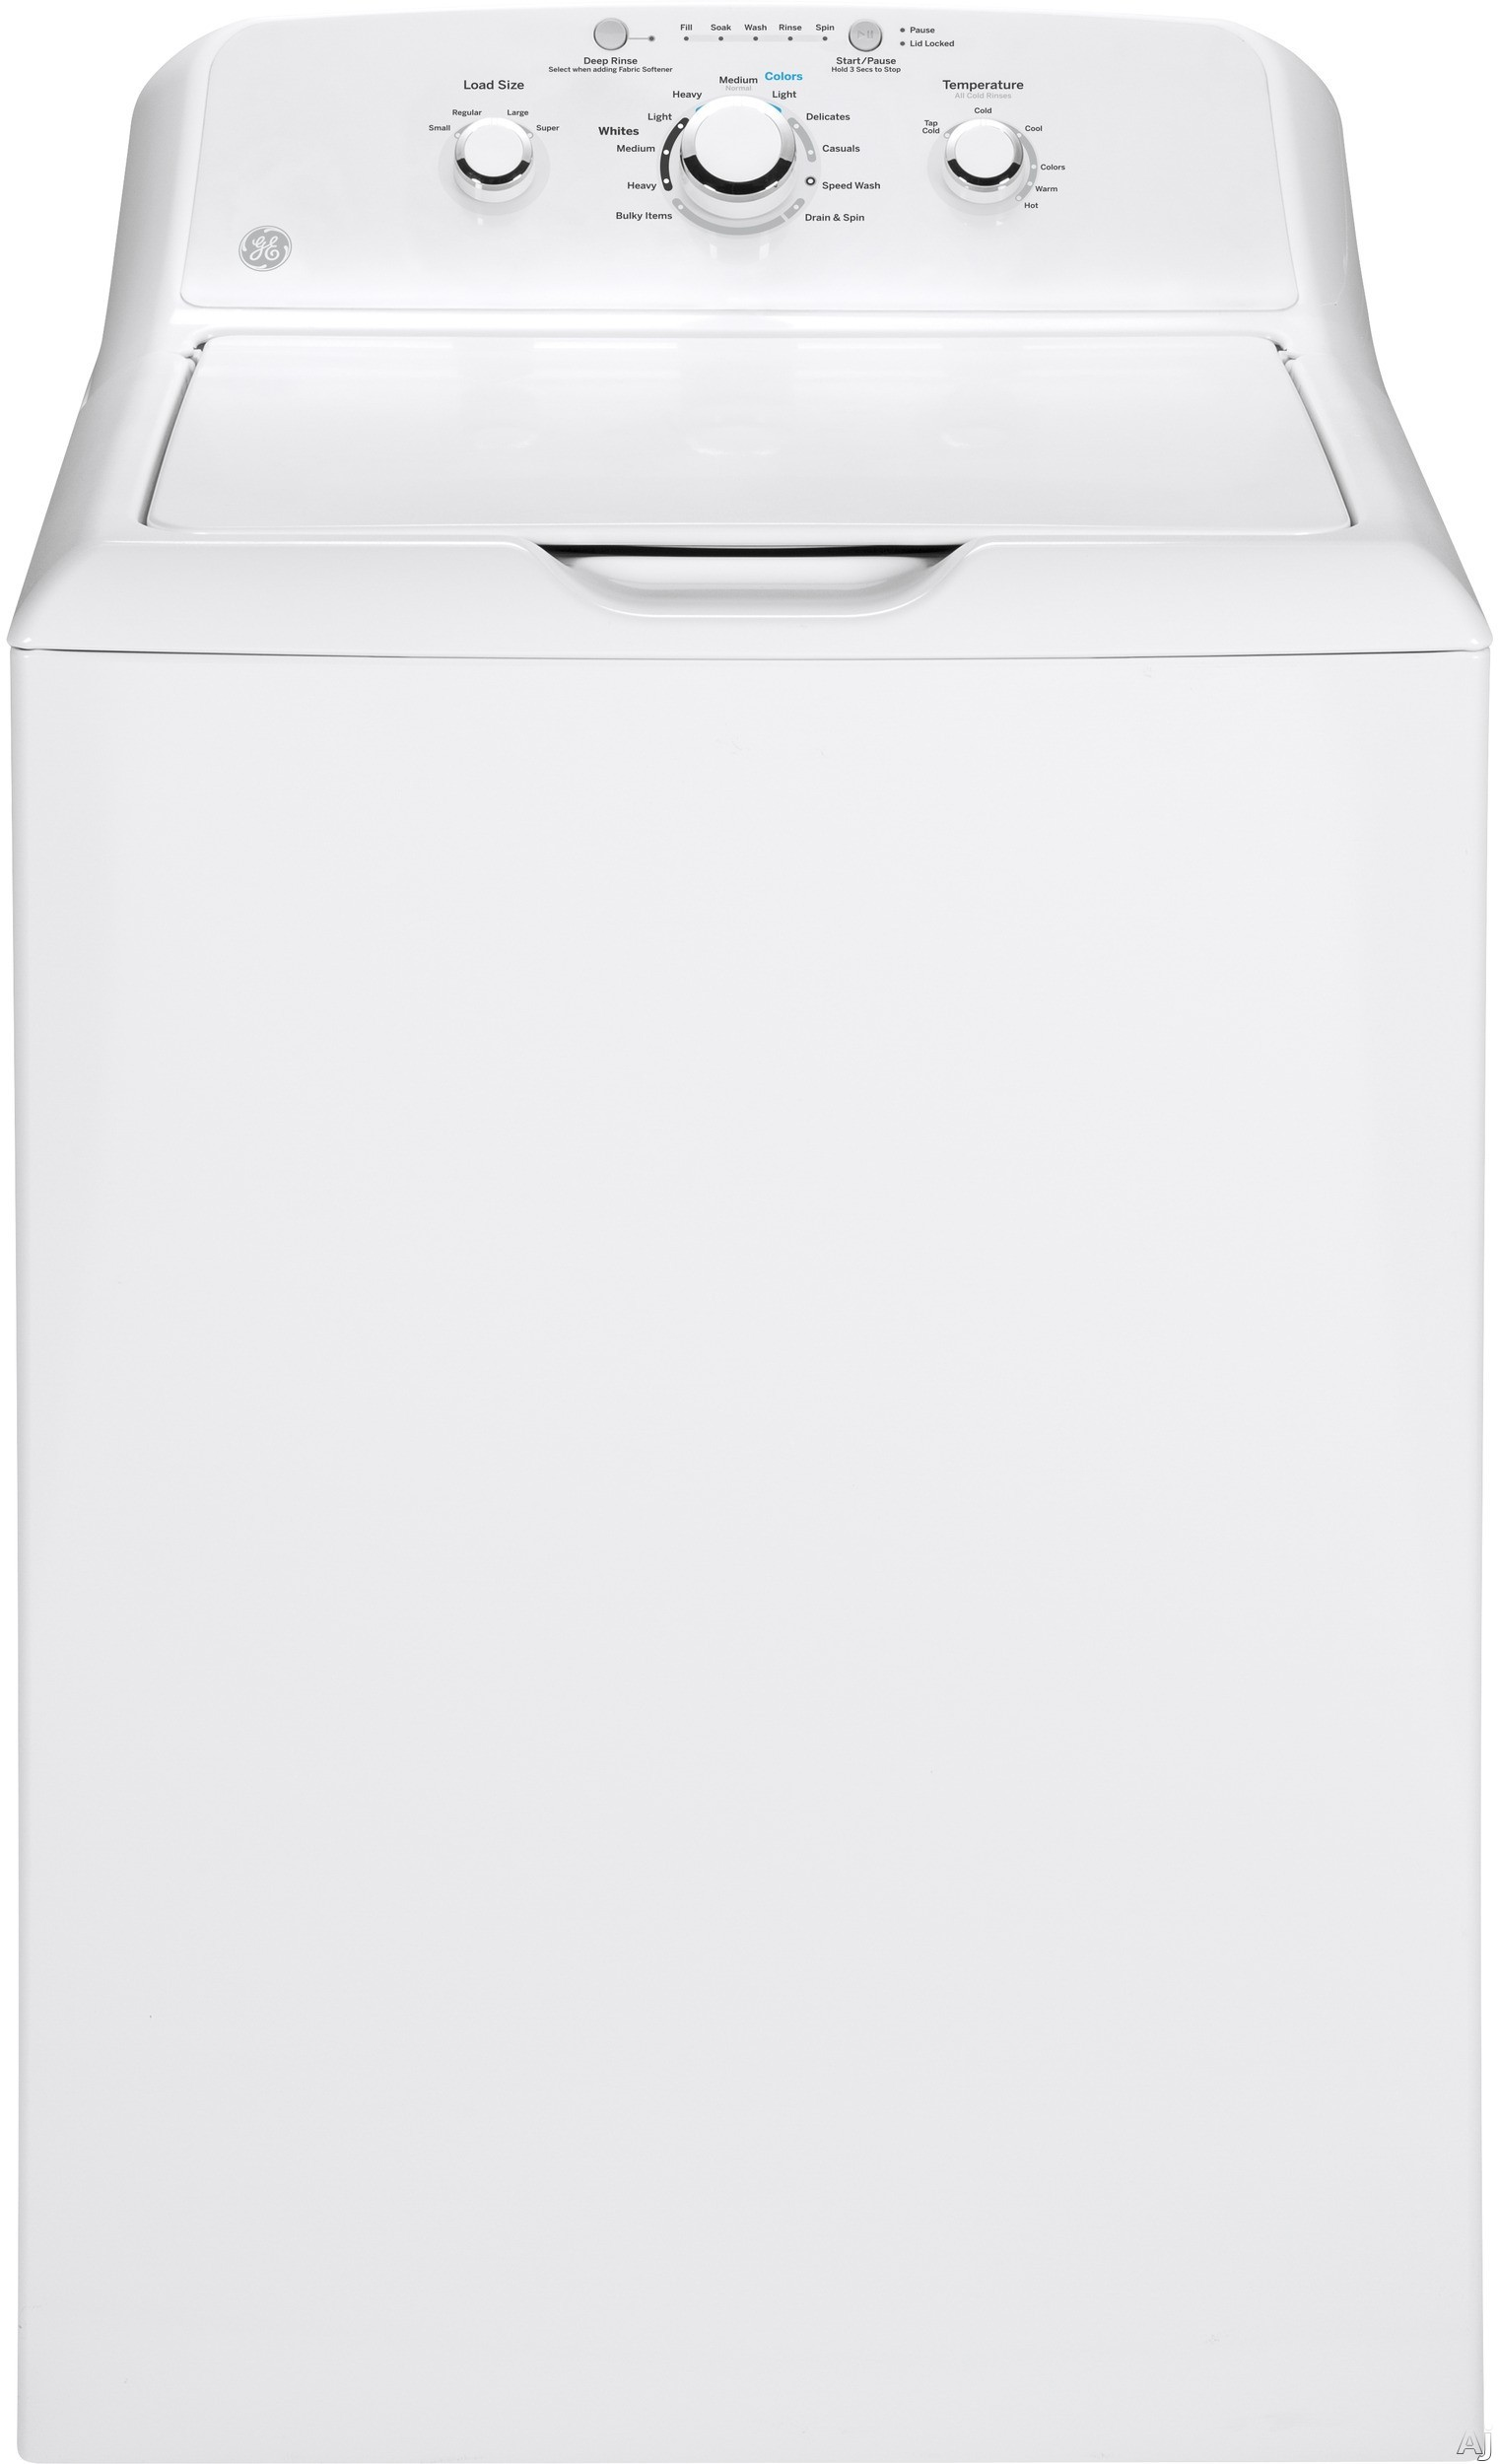 Picture of 27 Inch 3.8 cu. ft. Top Load Washer with 11 Wash CyclesNo job is too large or too small for this powerful top-load washer by GE. This washer's 3.6 cubic-feet of washing space allows you to wash the largest of laundry loads, even bulky blankets and towels. Select your preferred load size for the desired water level or let the machine automatically sense the load and add the amount of water needed t